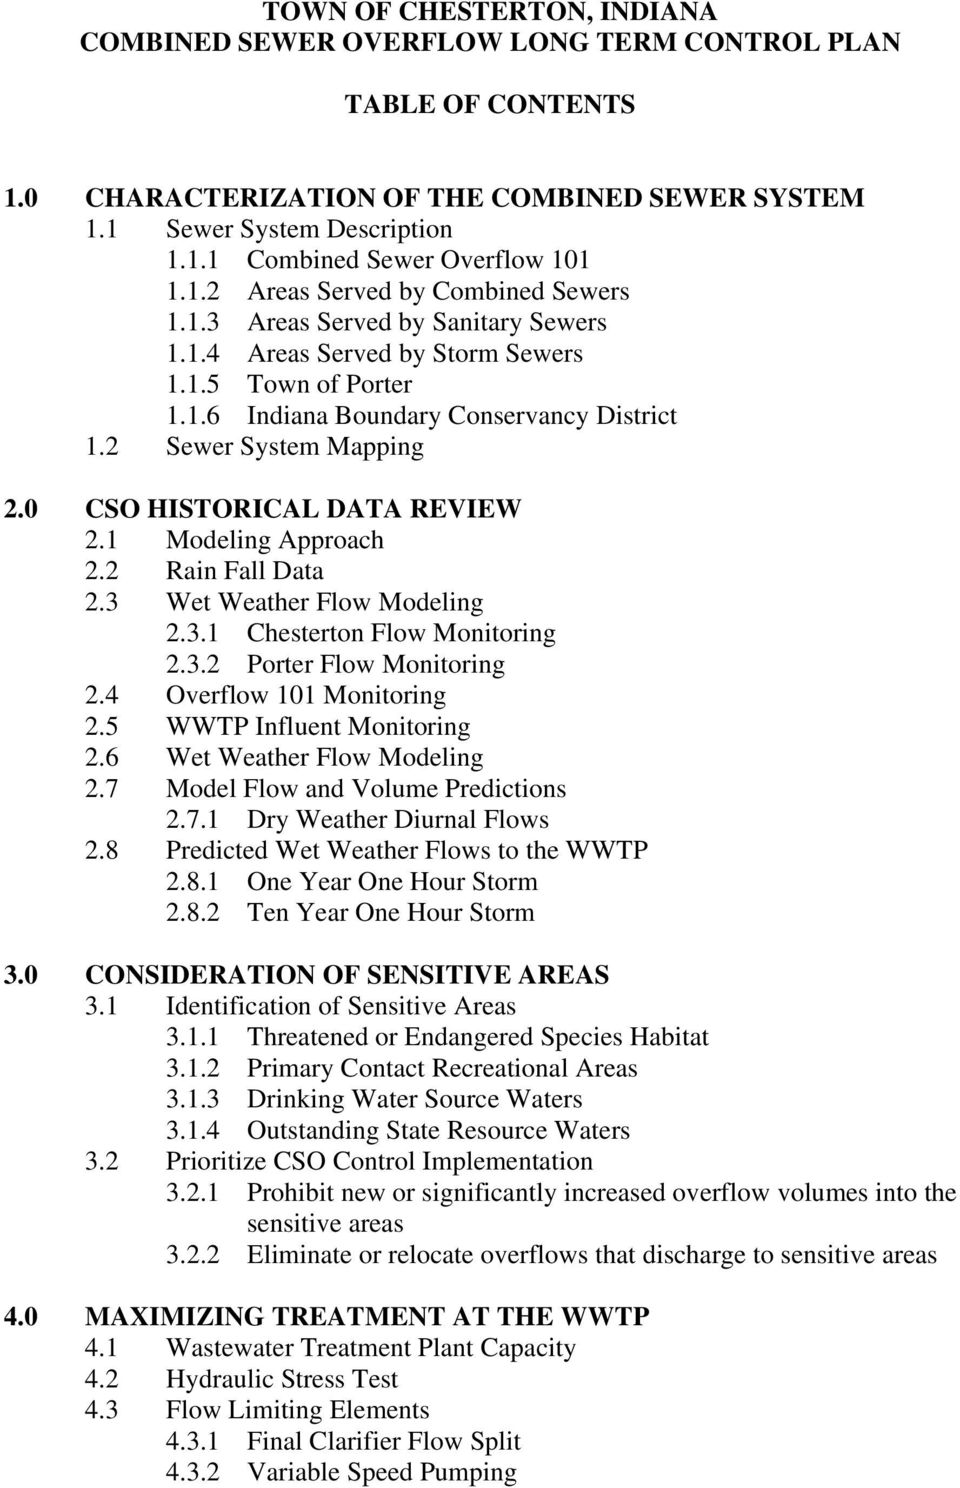 2 Sewer System Mapping 2.0 CSO HISTORICAL DATA REVIEW 2.1 Modeling Approach 2.2 Rain Fall Data 2.3 Wet Weather Flow Modeling 2.3.1 Chesterton Flow Monitoring 2.3.2 Porter Flow Monitoring 2.